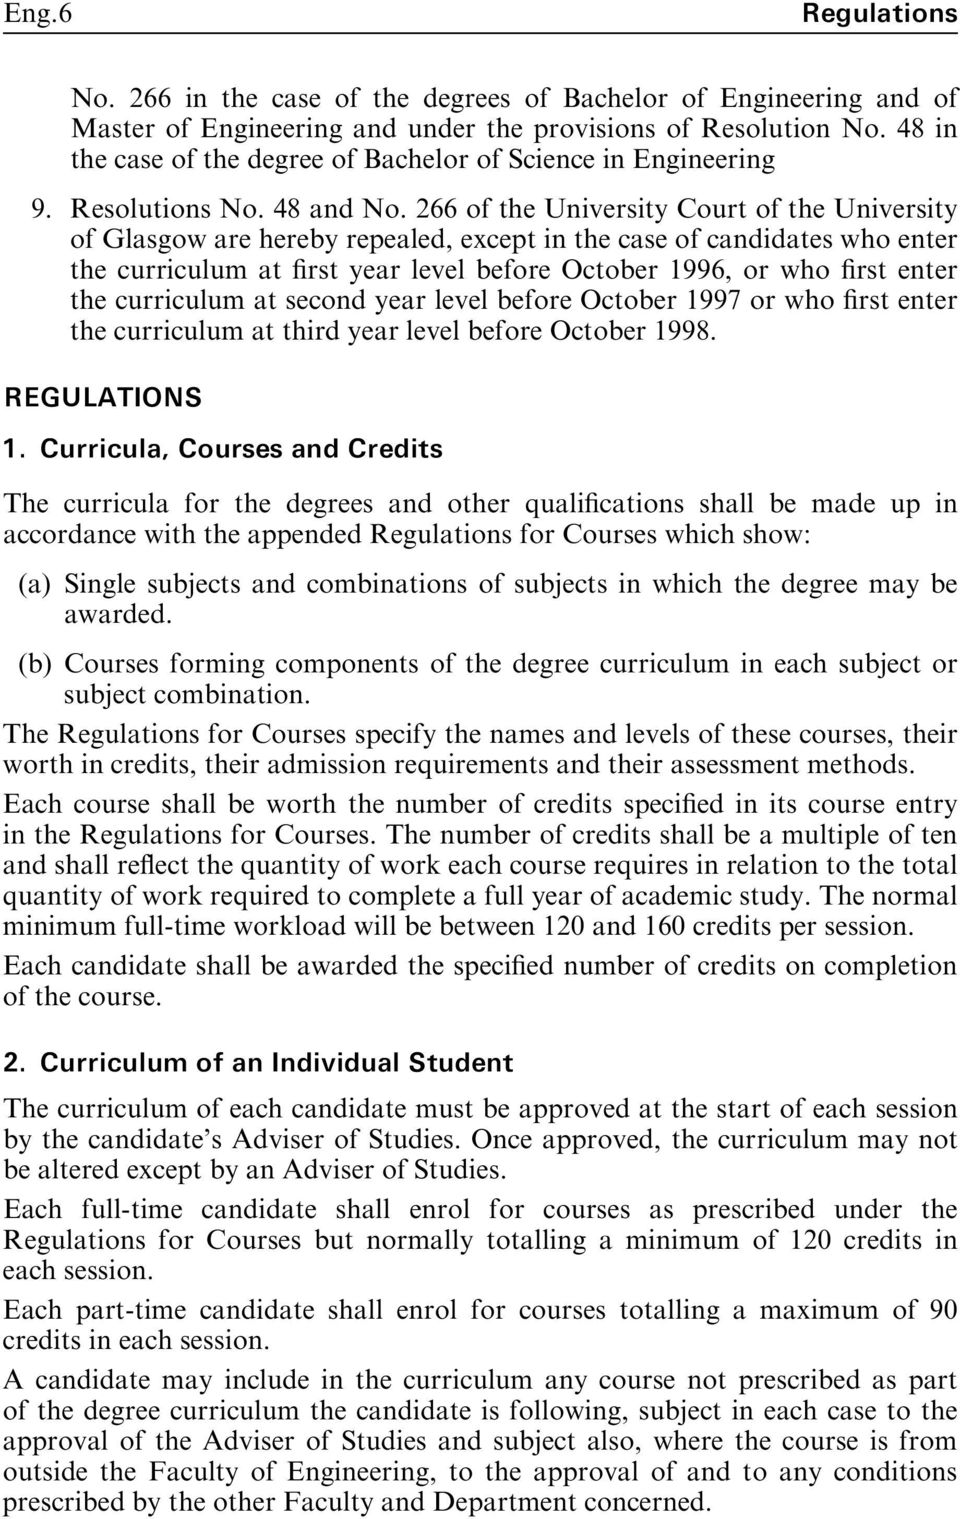 266 of the University Court of the University of Glasgow are hereby repealed, except in the case of candidates who enter the curriculum at rst year level before October 1996, or who rst enter the